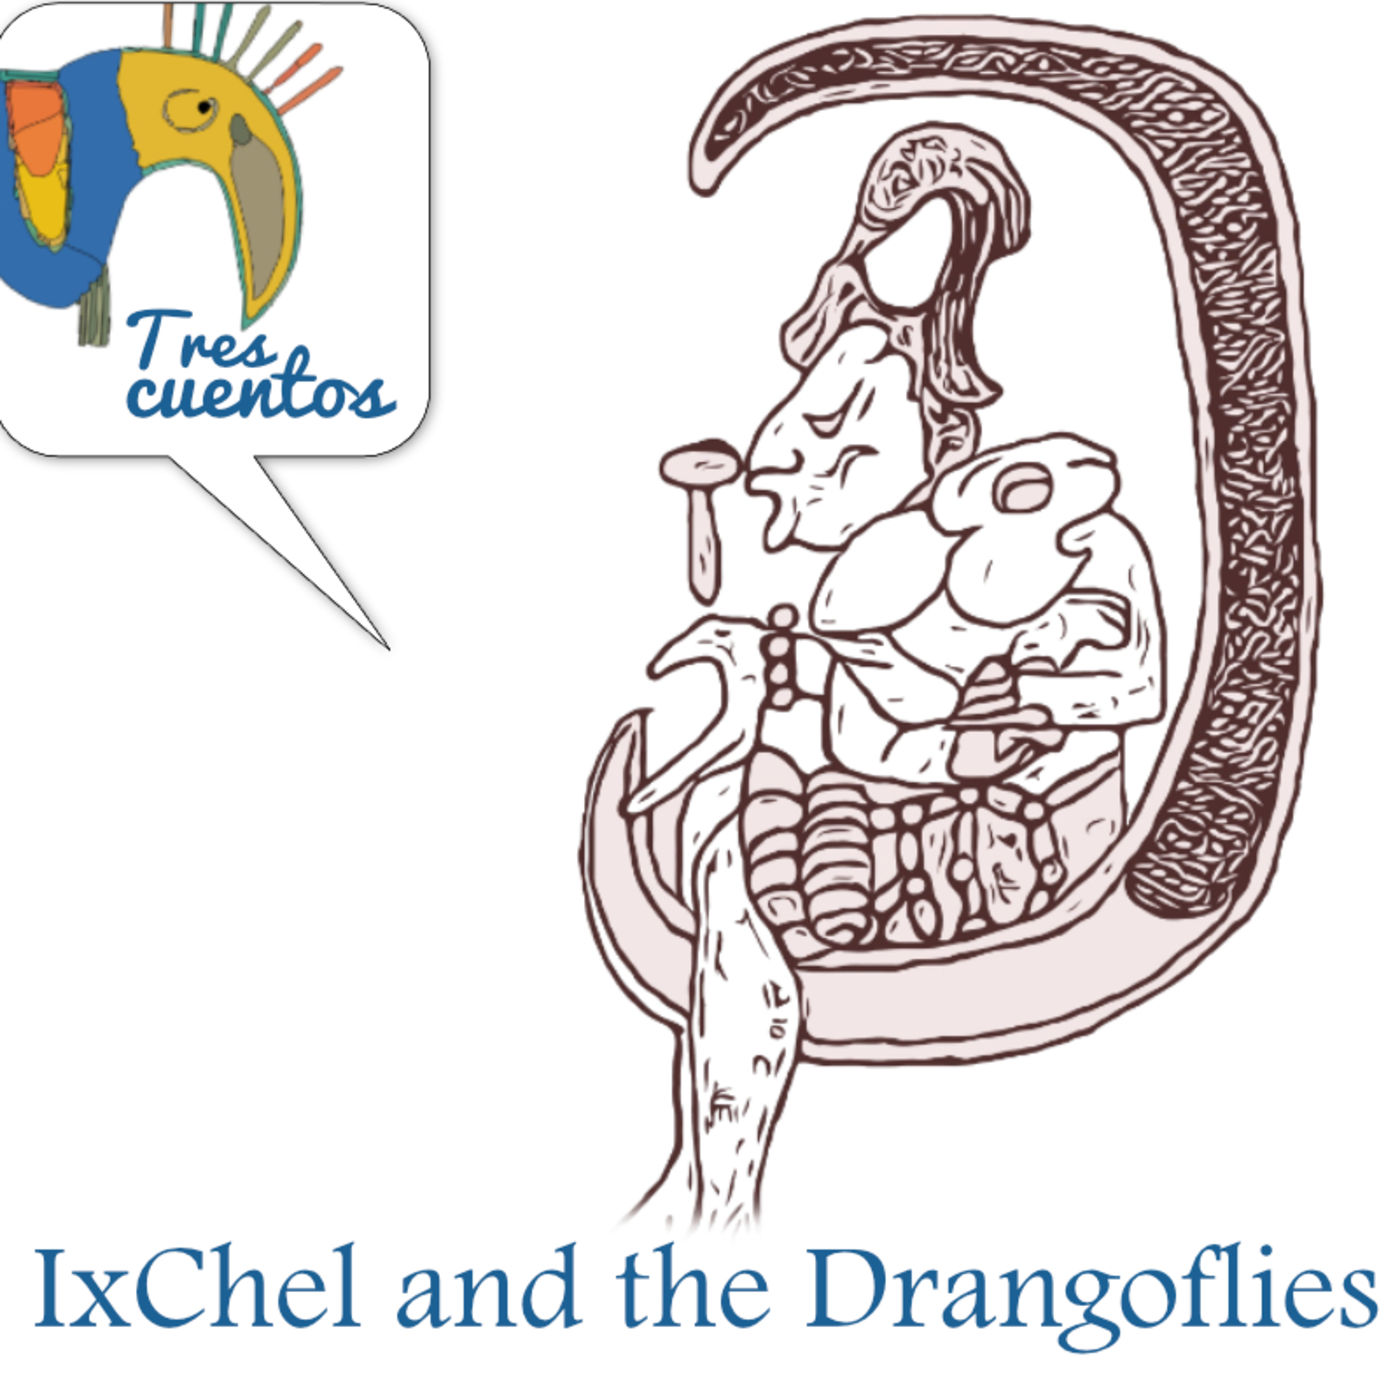 6- Myths of Love and Hate - IxChel and the Dragonflies - Maya/Guatemala